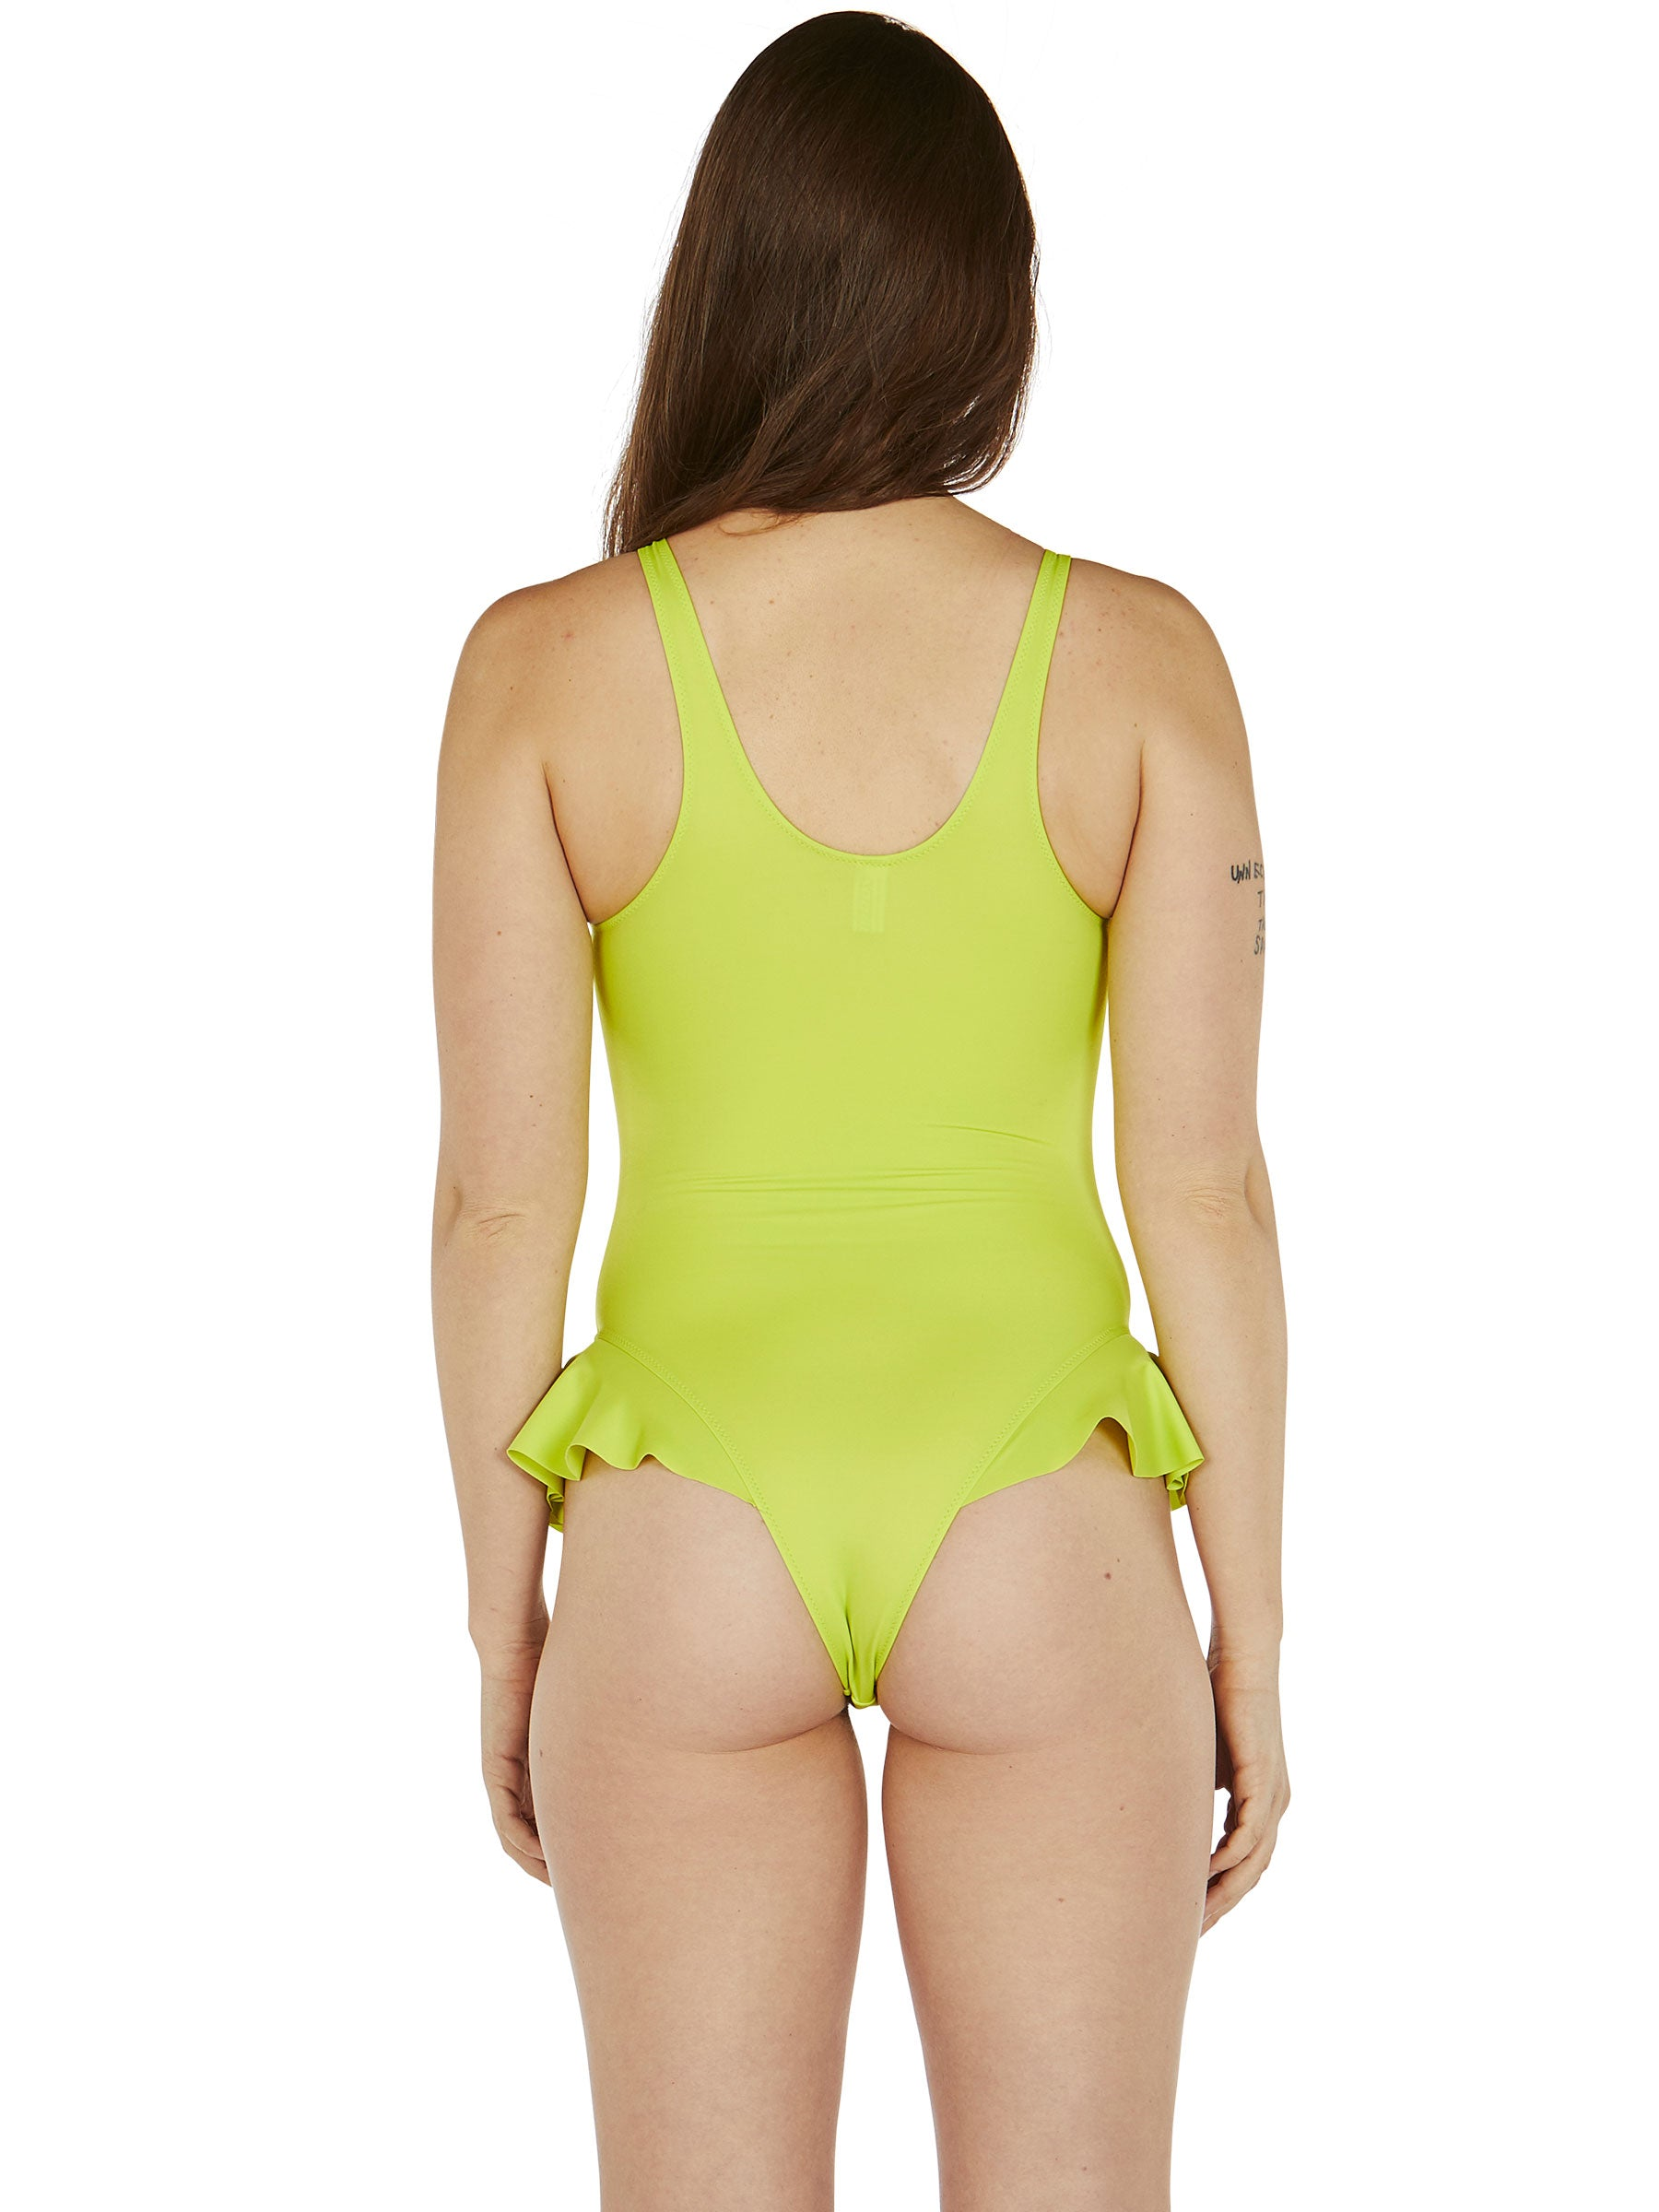 odd92 Fantabody Acid Green Erika Swimsuit Spring/Summer 2019 Womenswear - 4